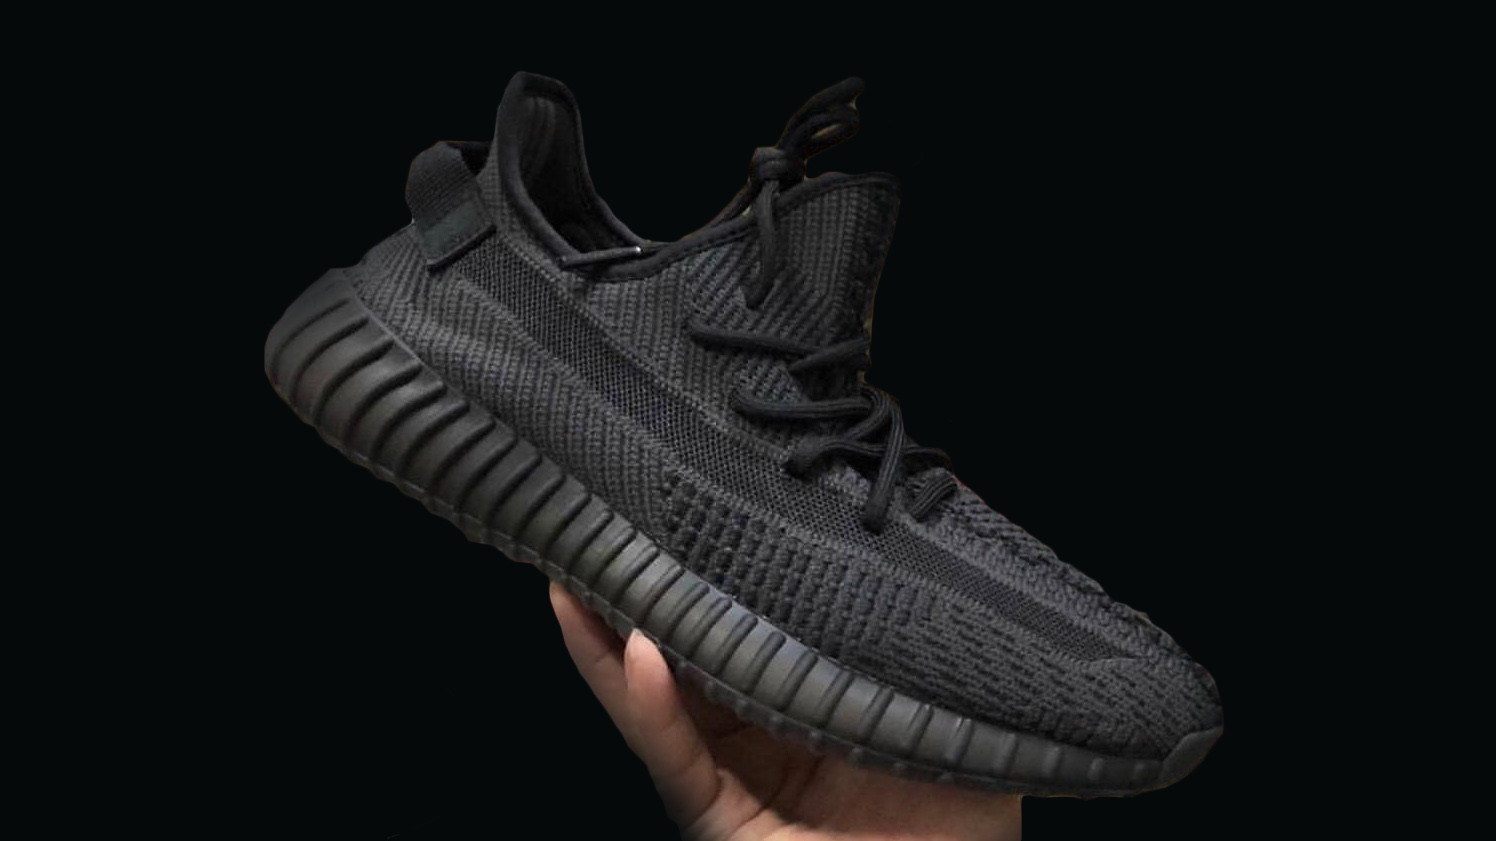 famiglia complemento prominente  Acquisto - adidas yeezy nuove - OFF66% - usmkle.edu.in!